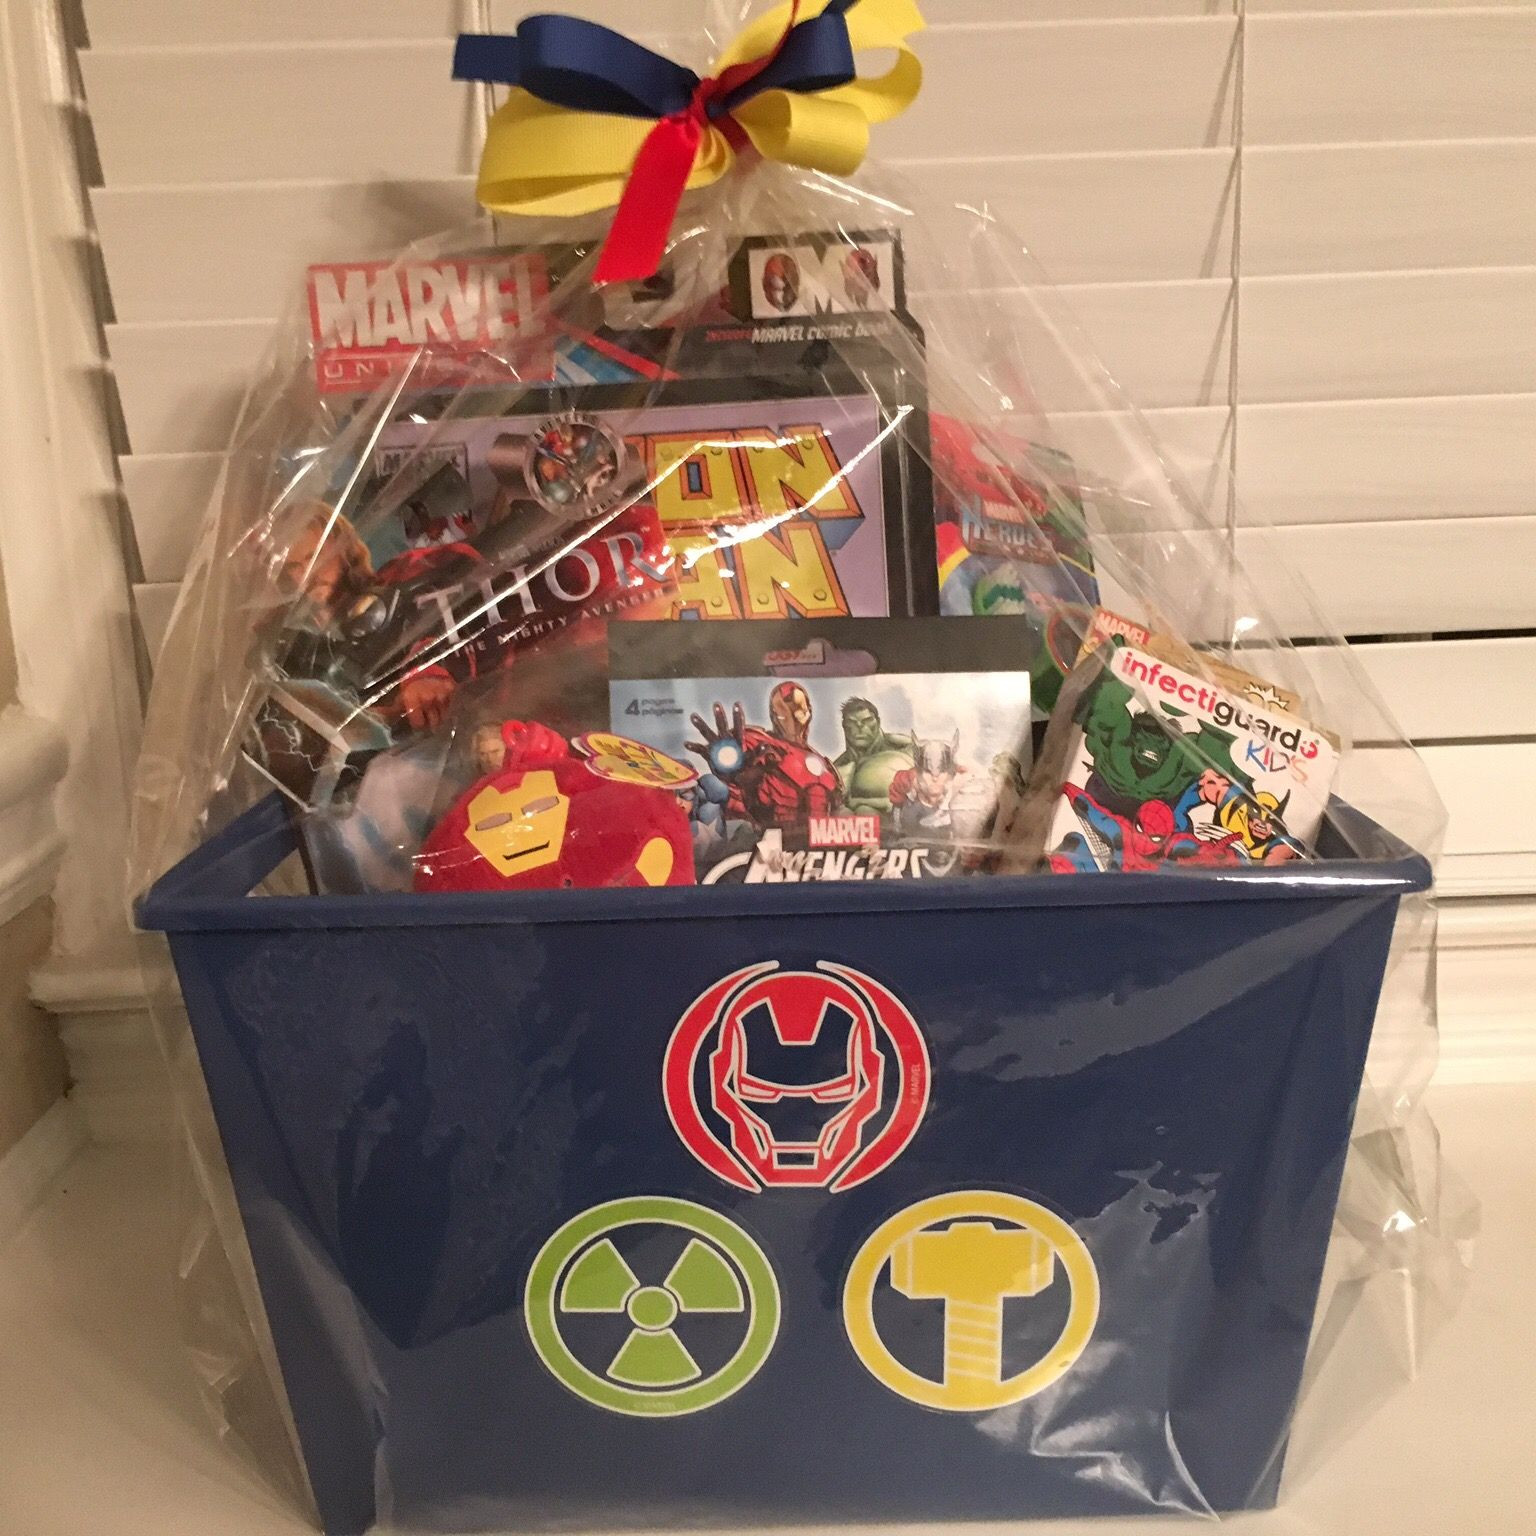 Best ideas about Marvel Gift Ideas . Save or Pin Marvel Avengers Gift Basket Gift Baskets Now.